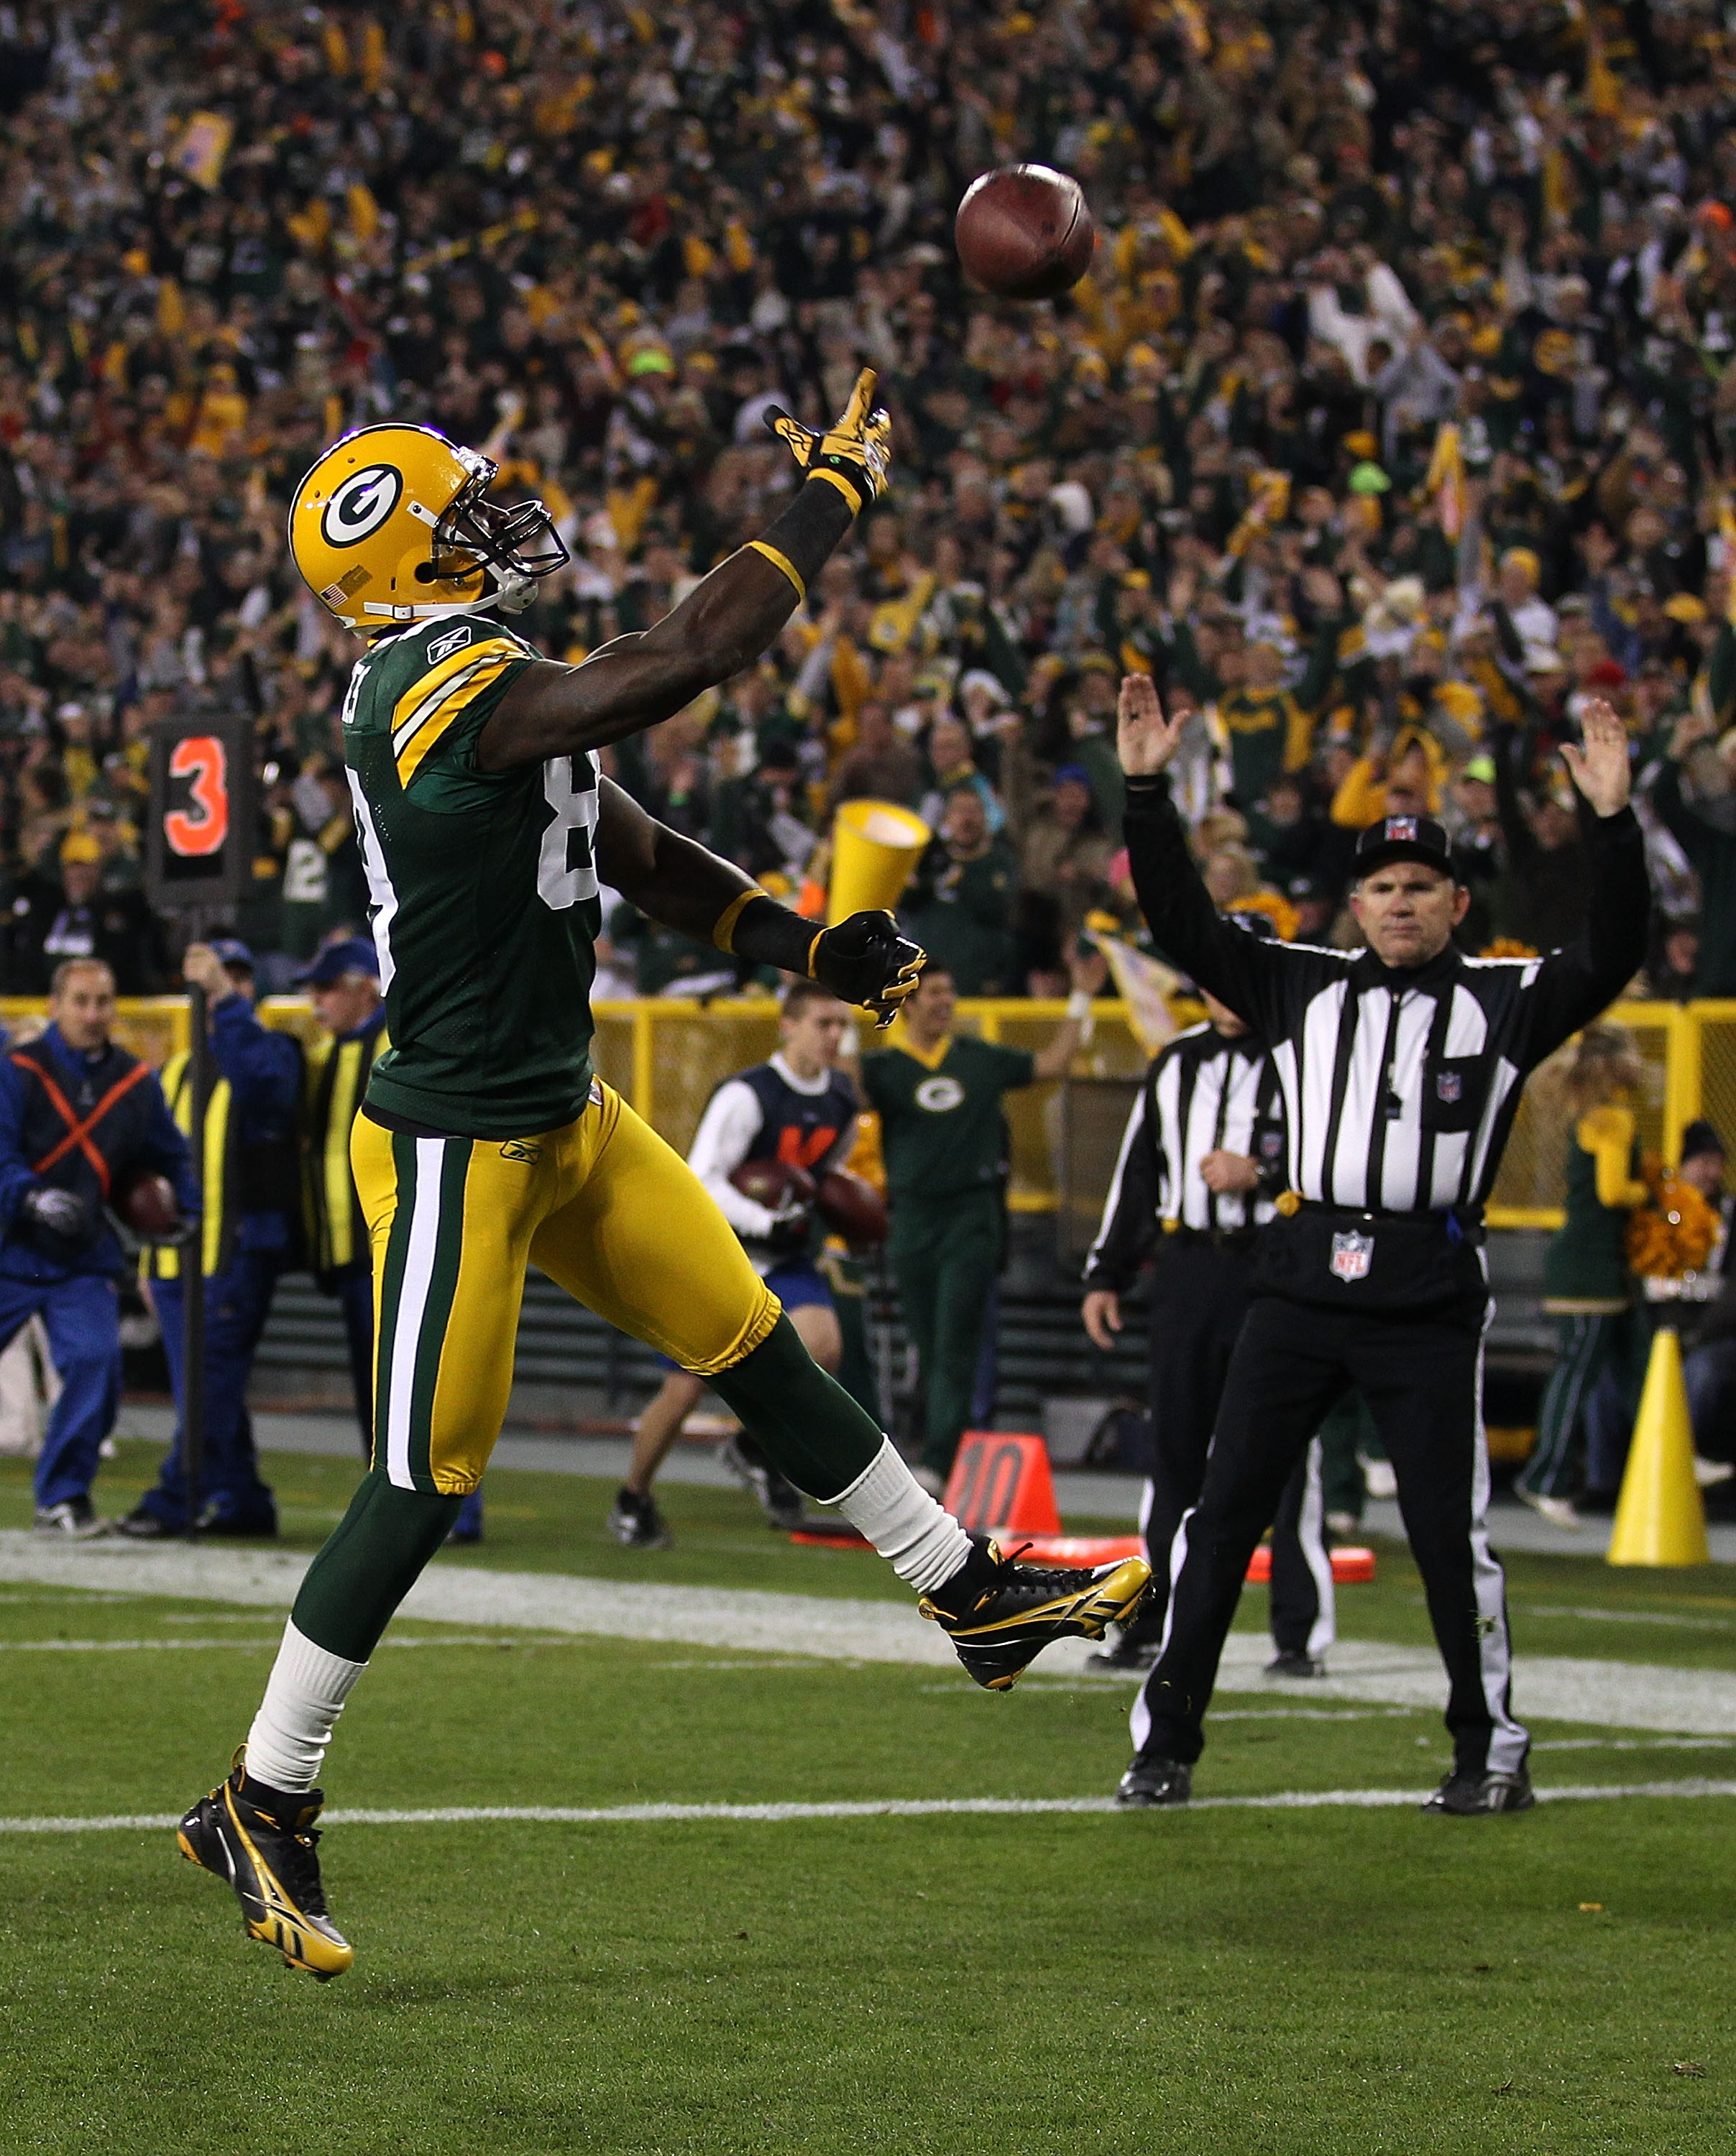 GREEN BAY, WI - NOVEMBER 07: James Jones #89 of the Green Bay Packers throws the ball into the air after scoring a touchdown against the Dallas Cowboys at Lambeau Field on November 7, 2010 in Green Bay, Wisconsin. (Photo by Jonathan Daniel/Getty Images)